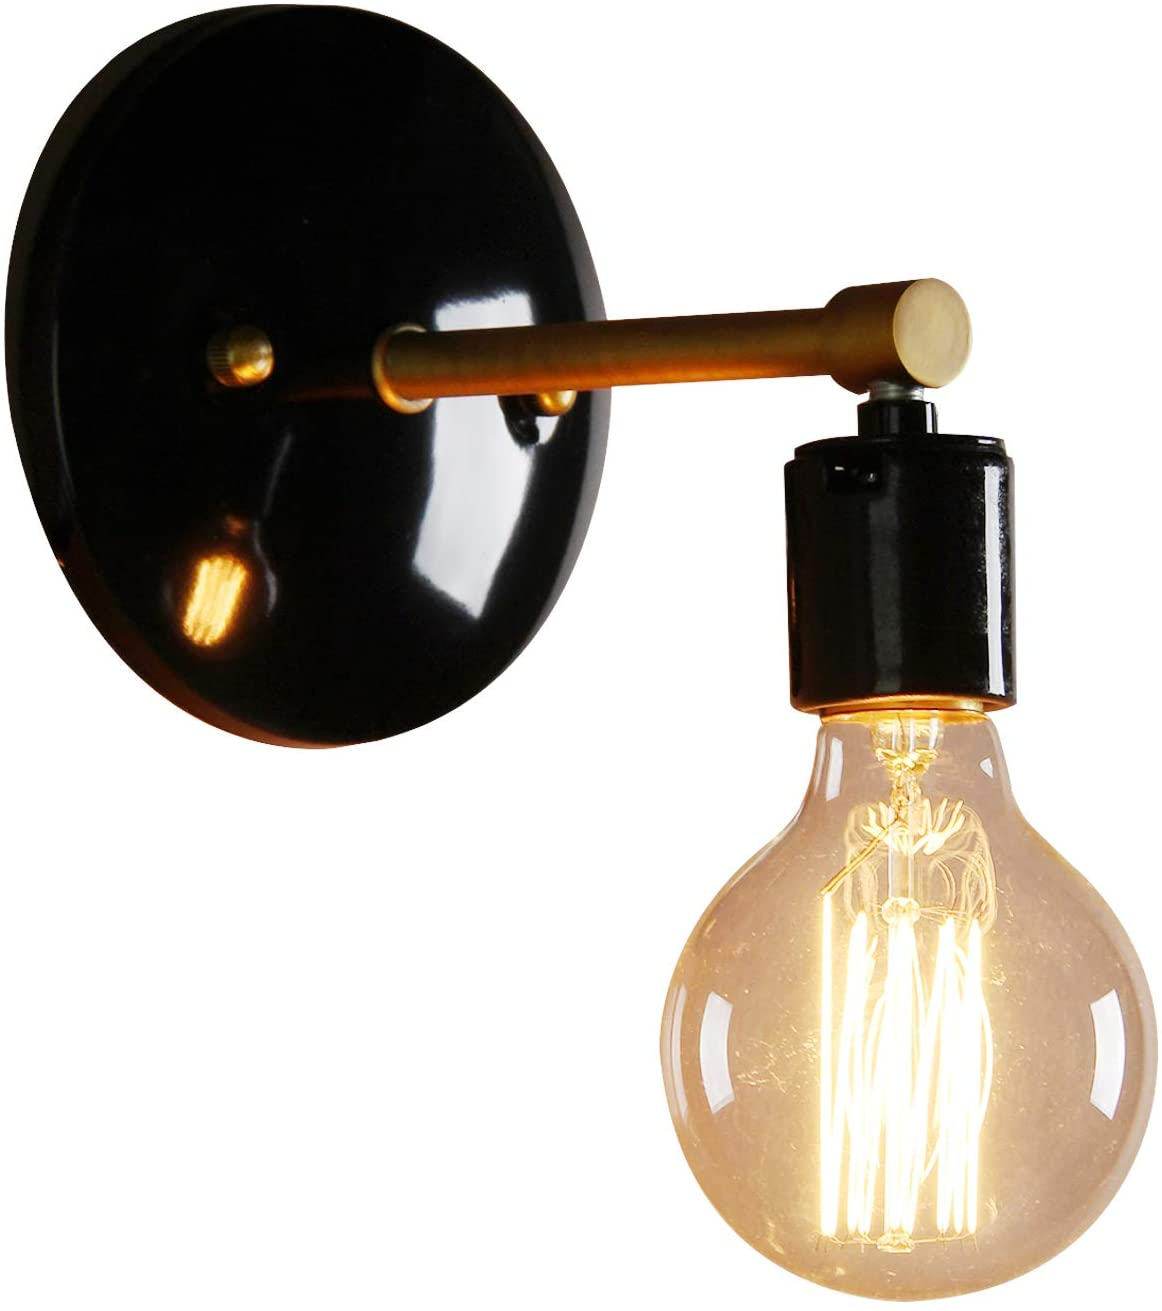 PERMO Industrial Scandinavian Mini Single Sconce Antique Finished 1-Light Wall Sconce Wall Lamp (Black)